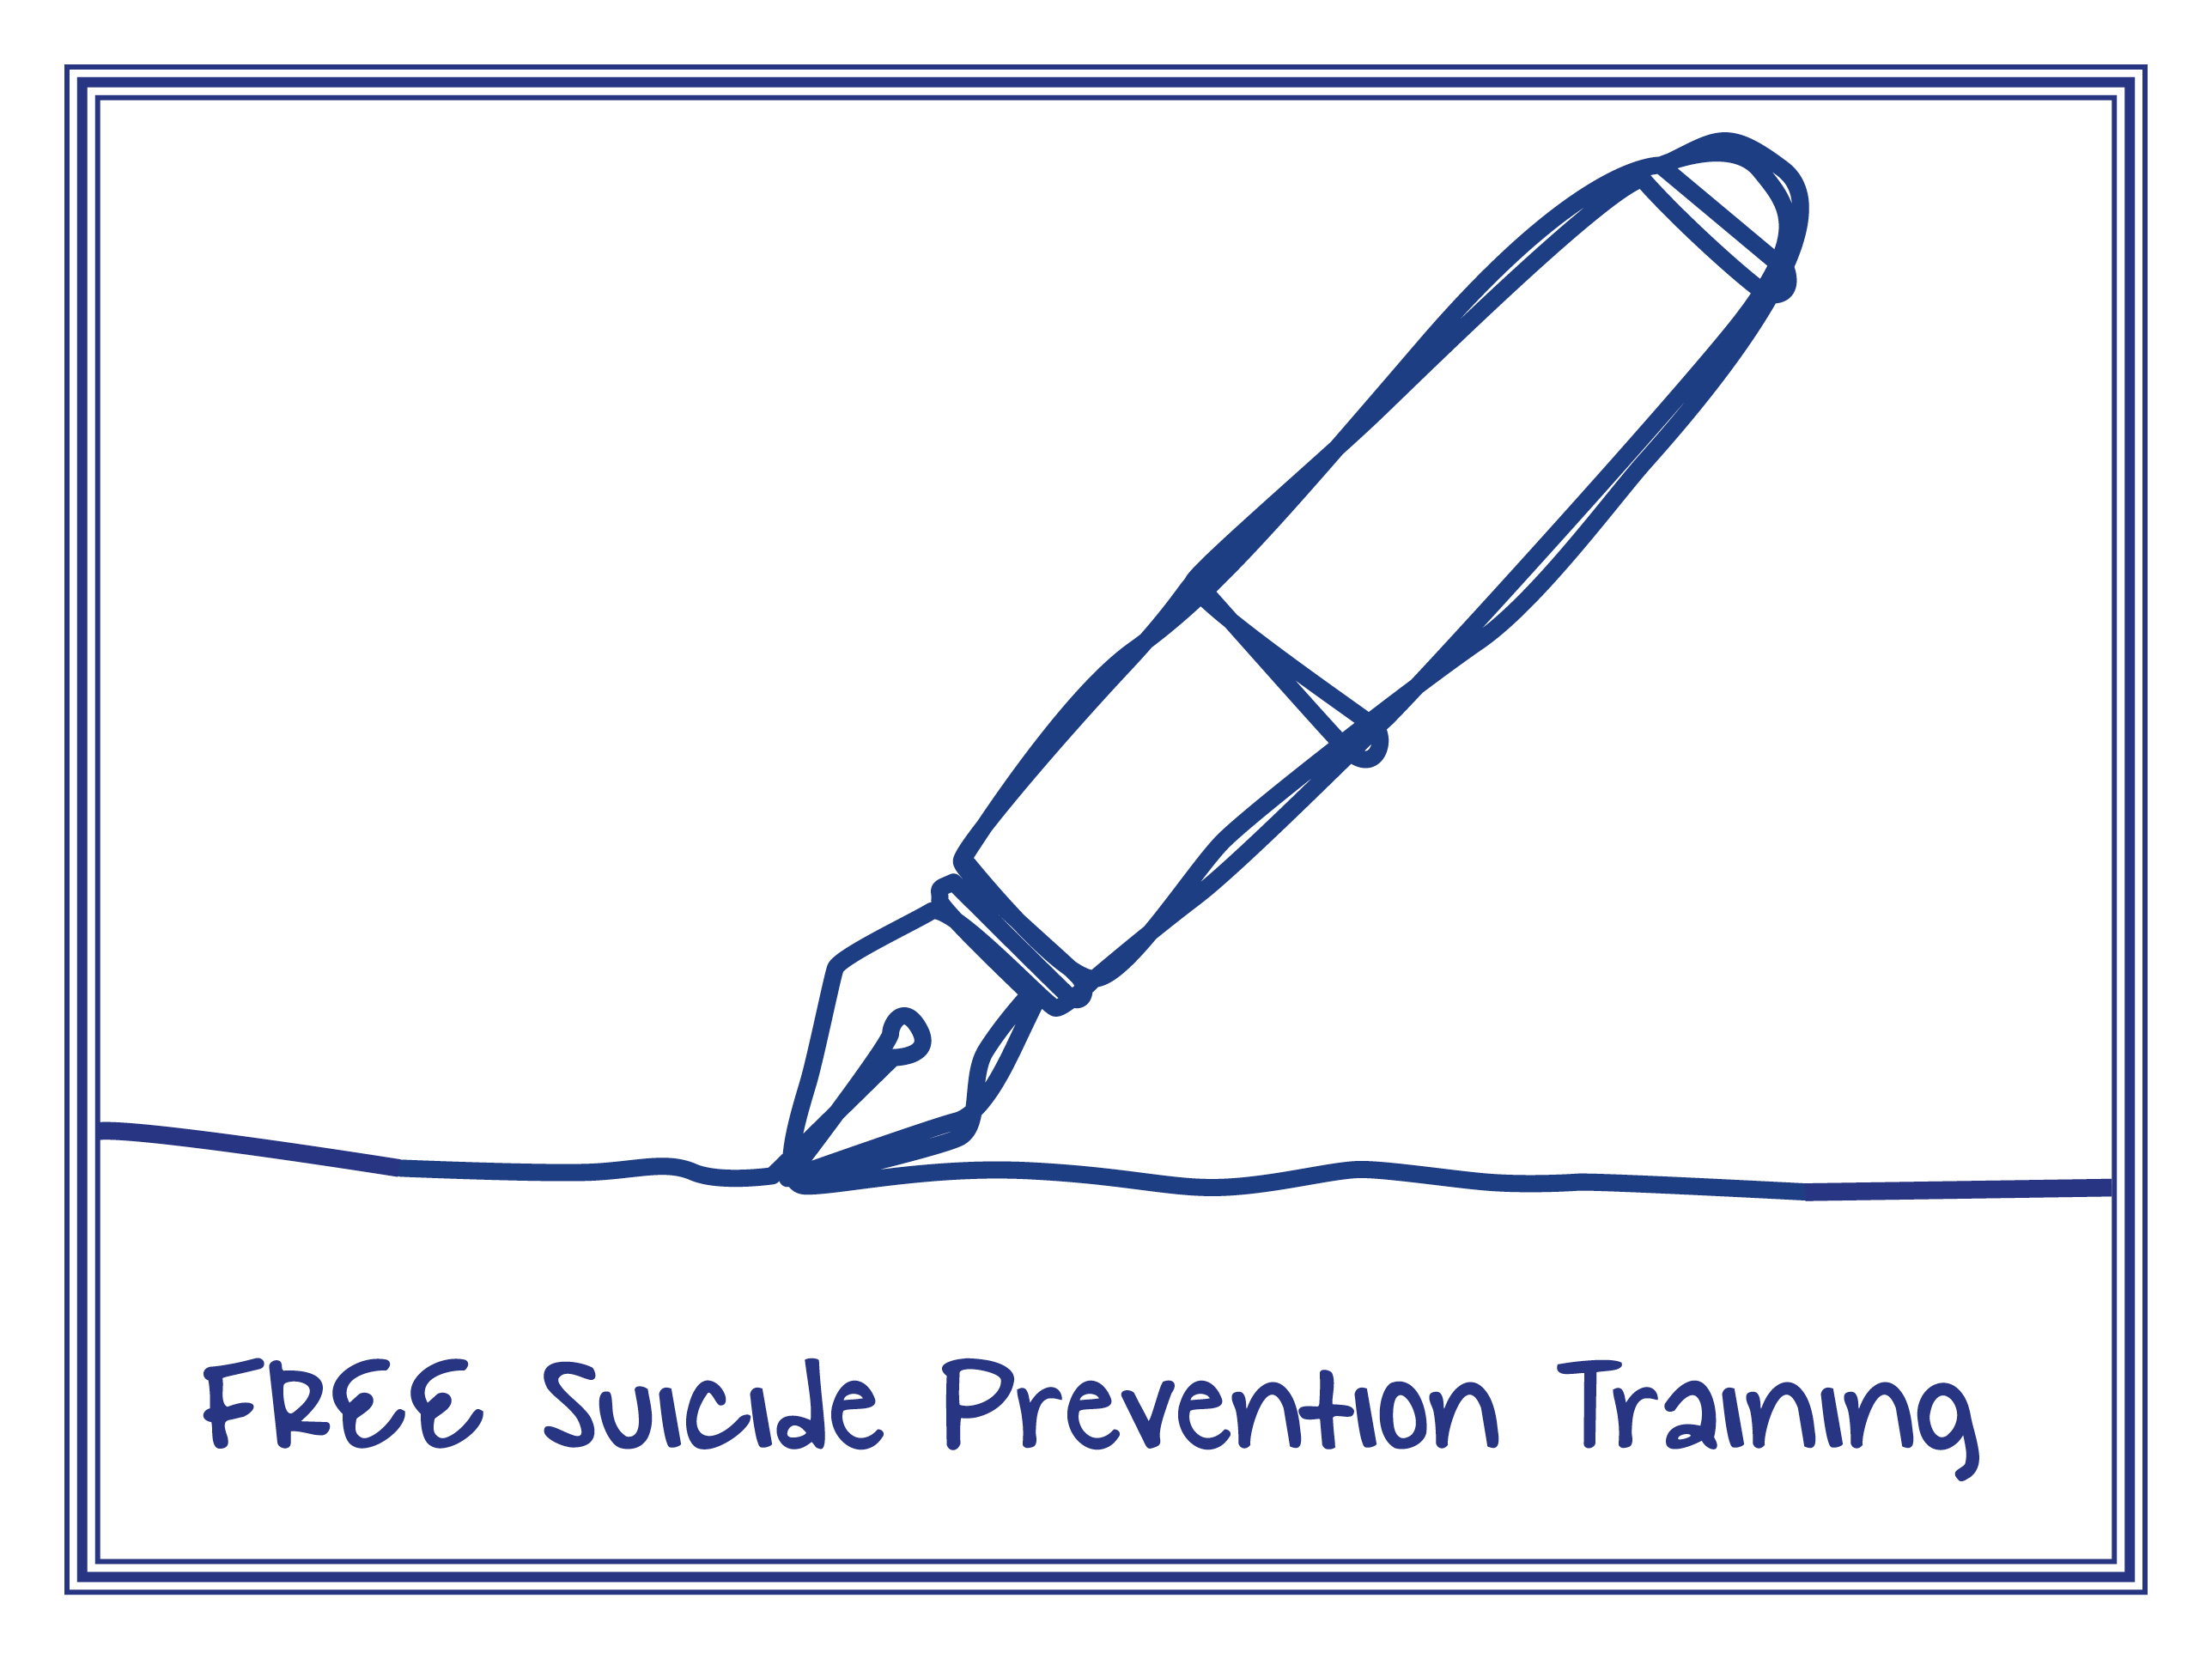 FREE Suicide Prevention Training Graphic